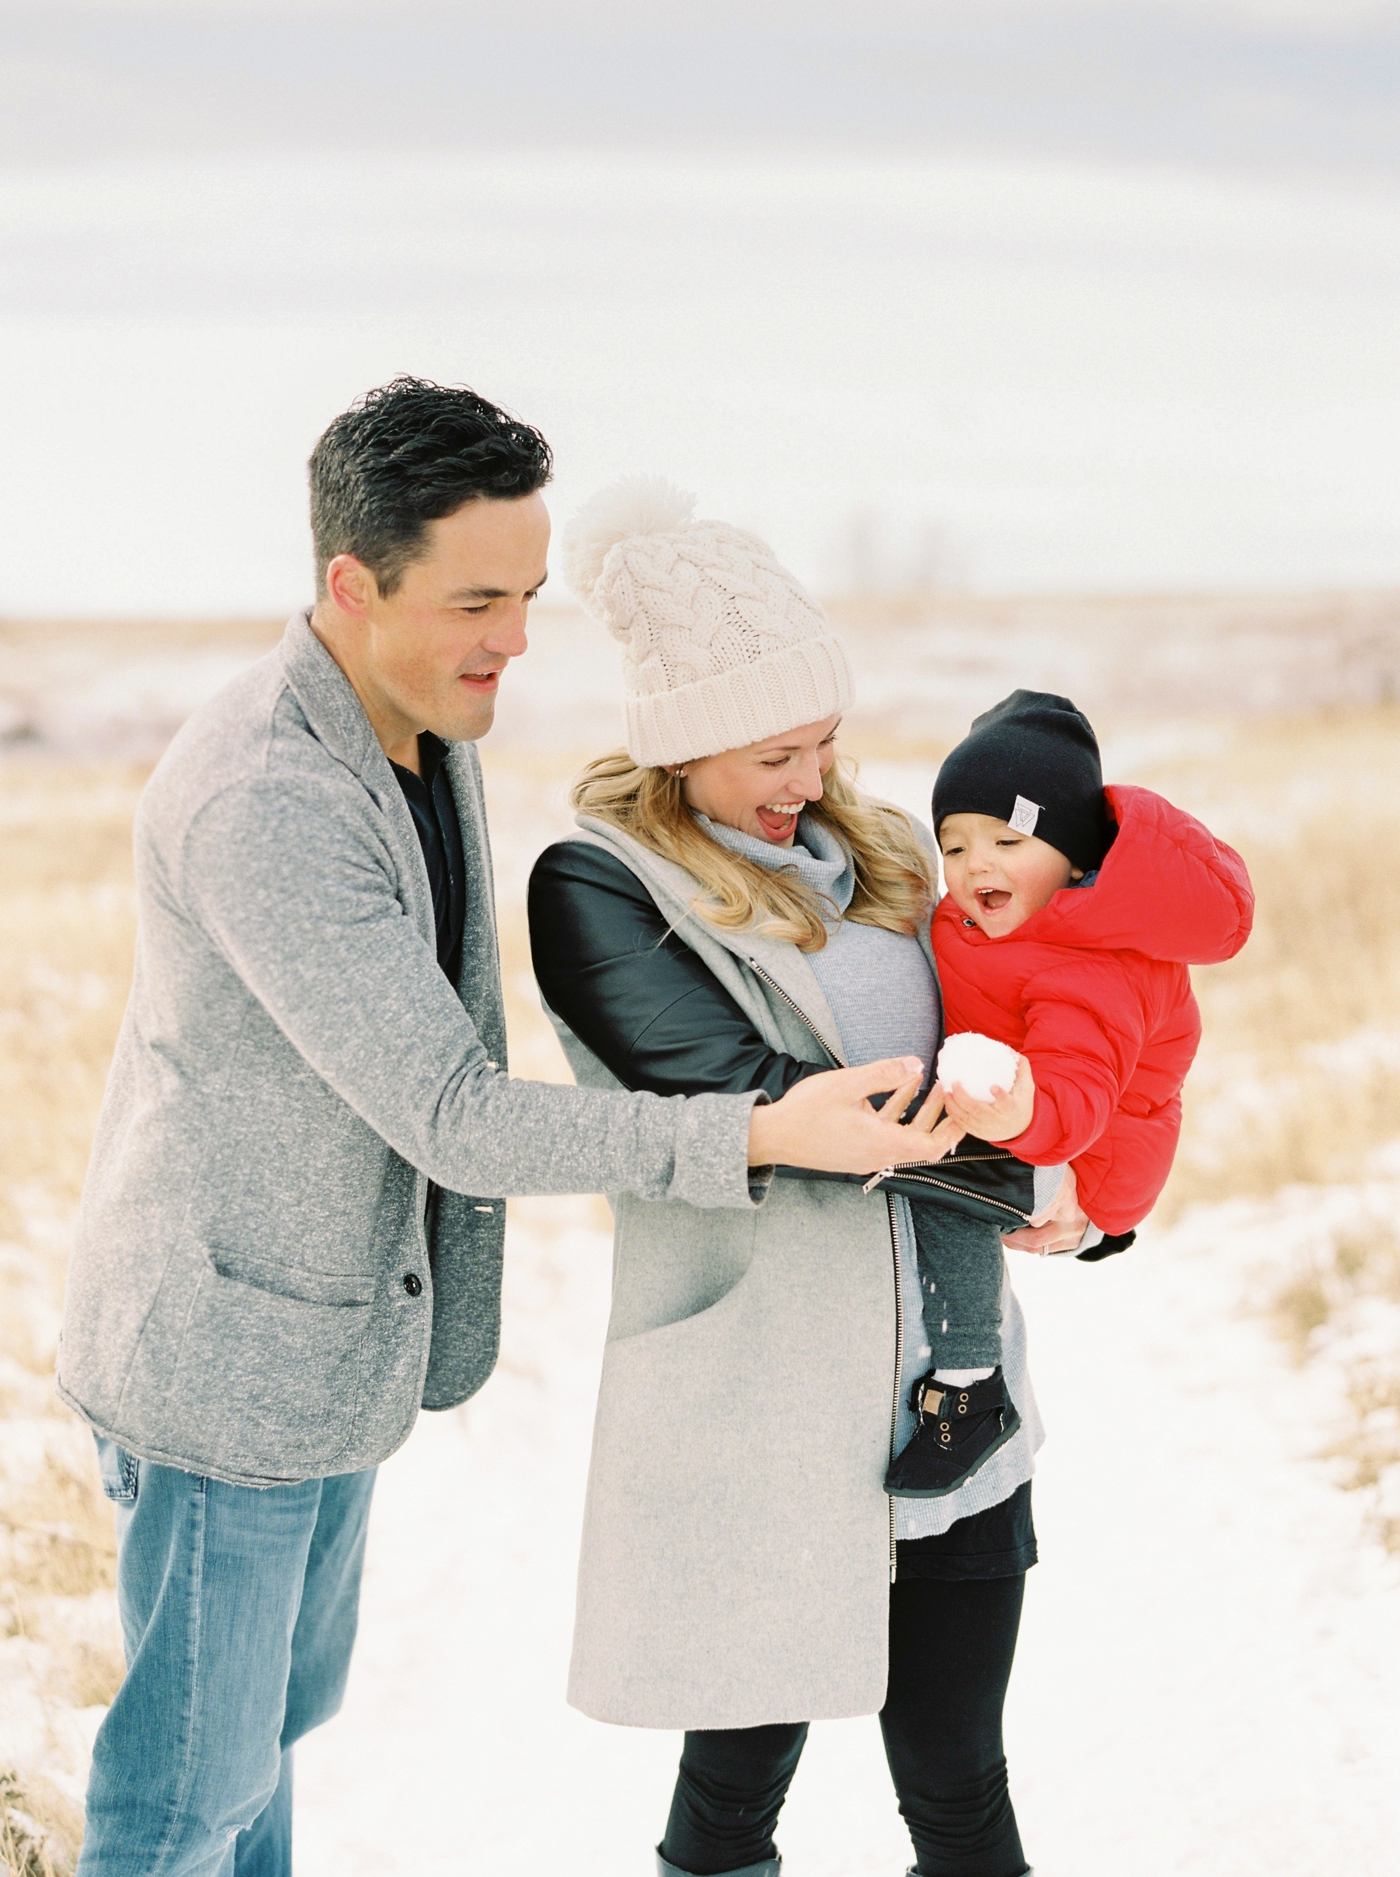 winter family photographers | calgary family mini sessions | Justine Milton Photography